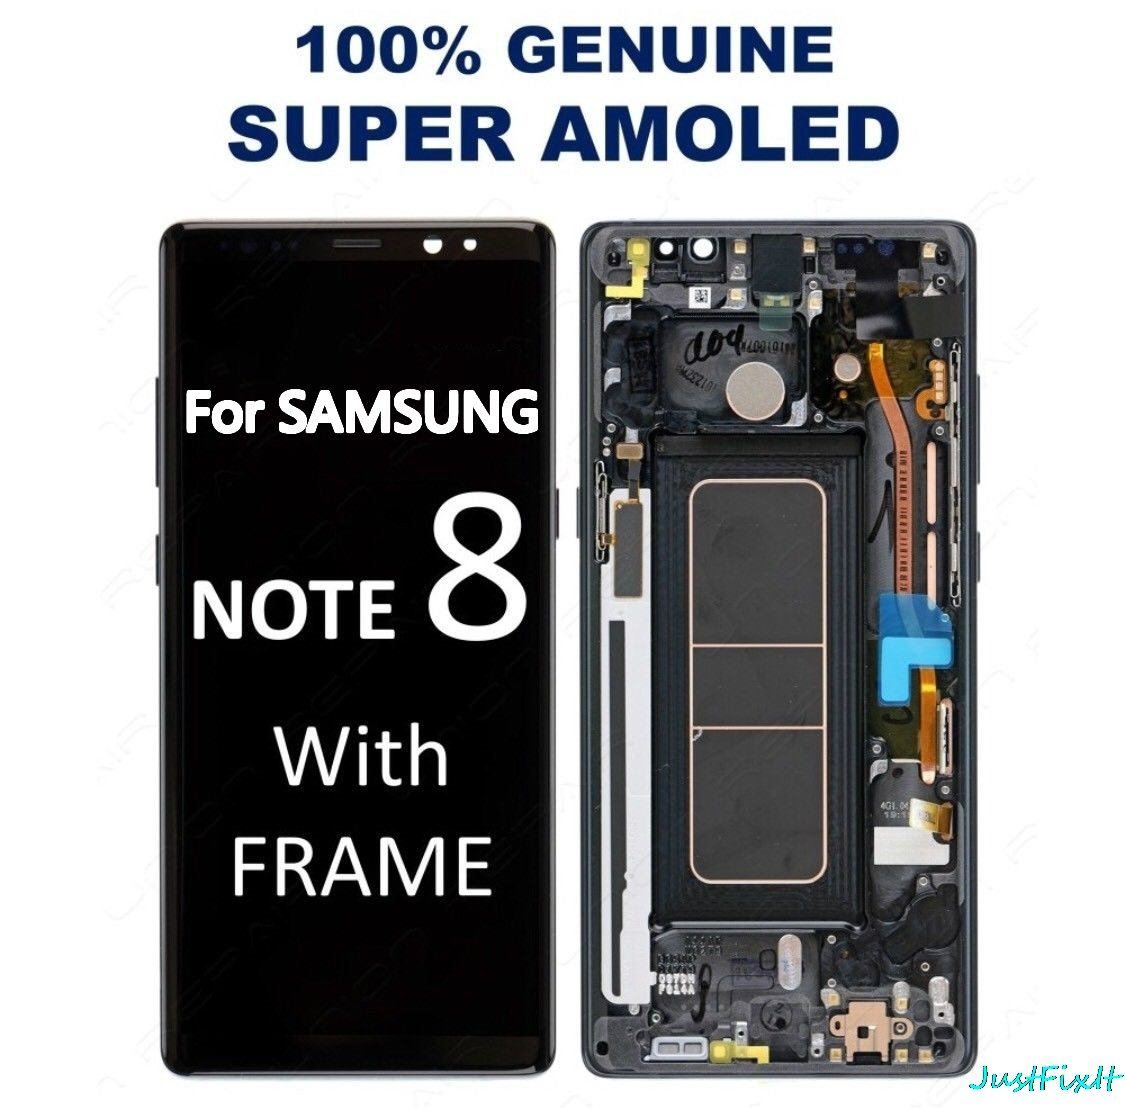 For Samsung Note 8 N9500 N950FD N950U Burn in Shadow Lcd Display Touch Screen Digitizer Assembly